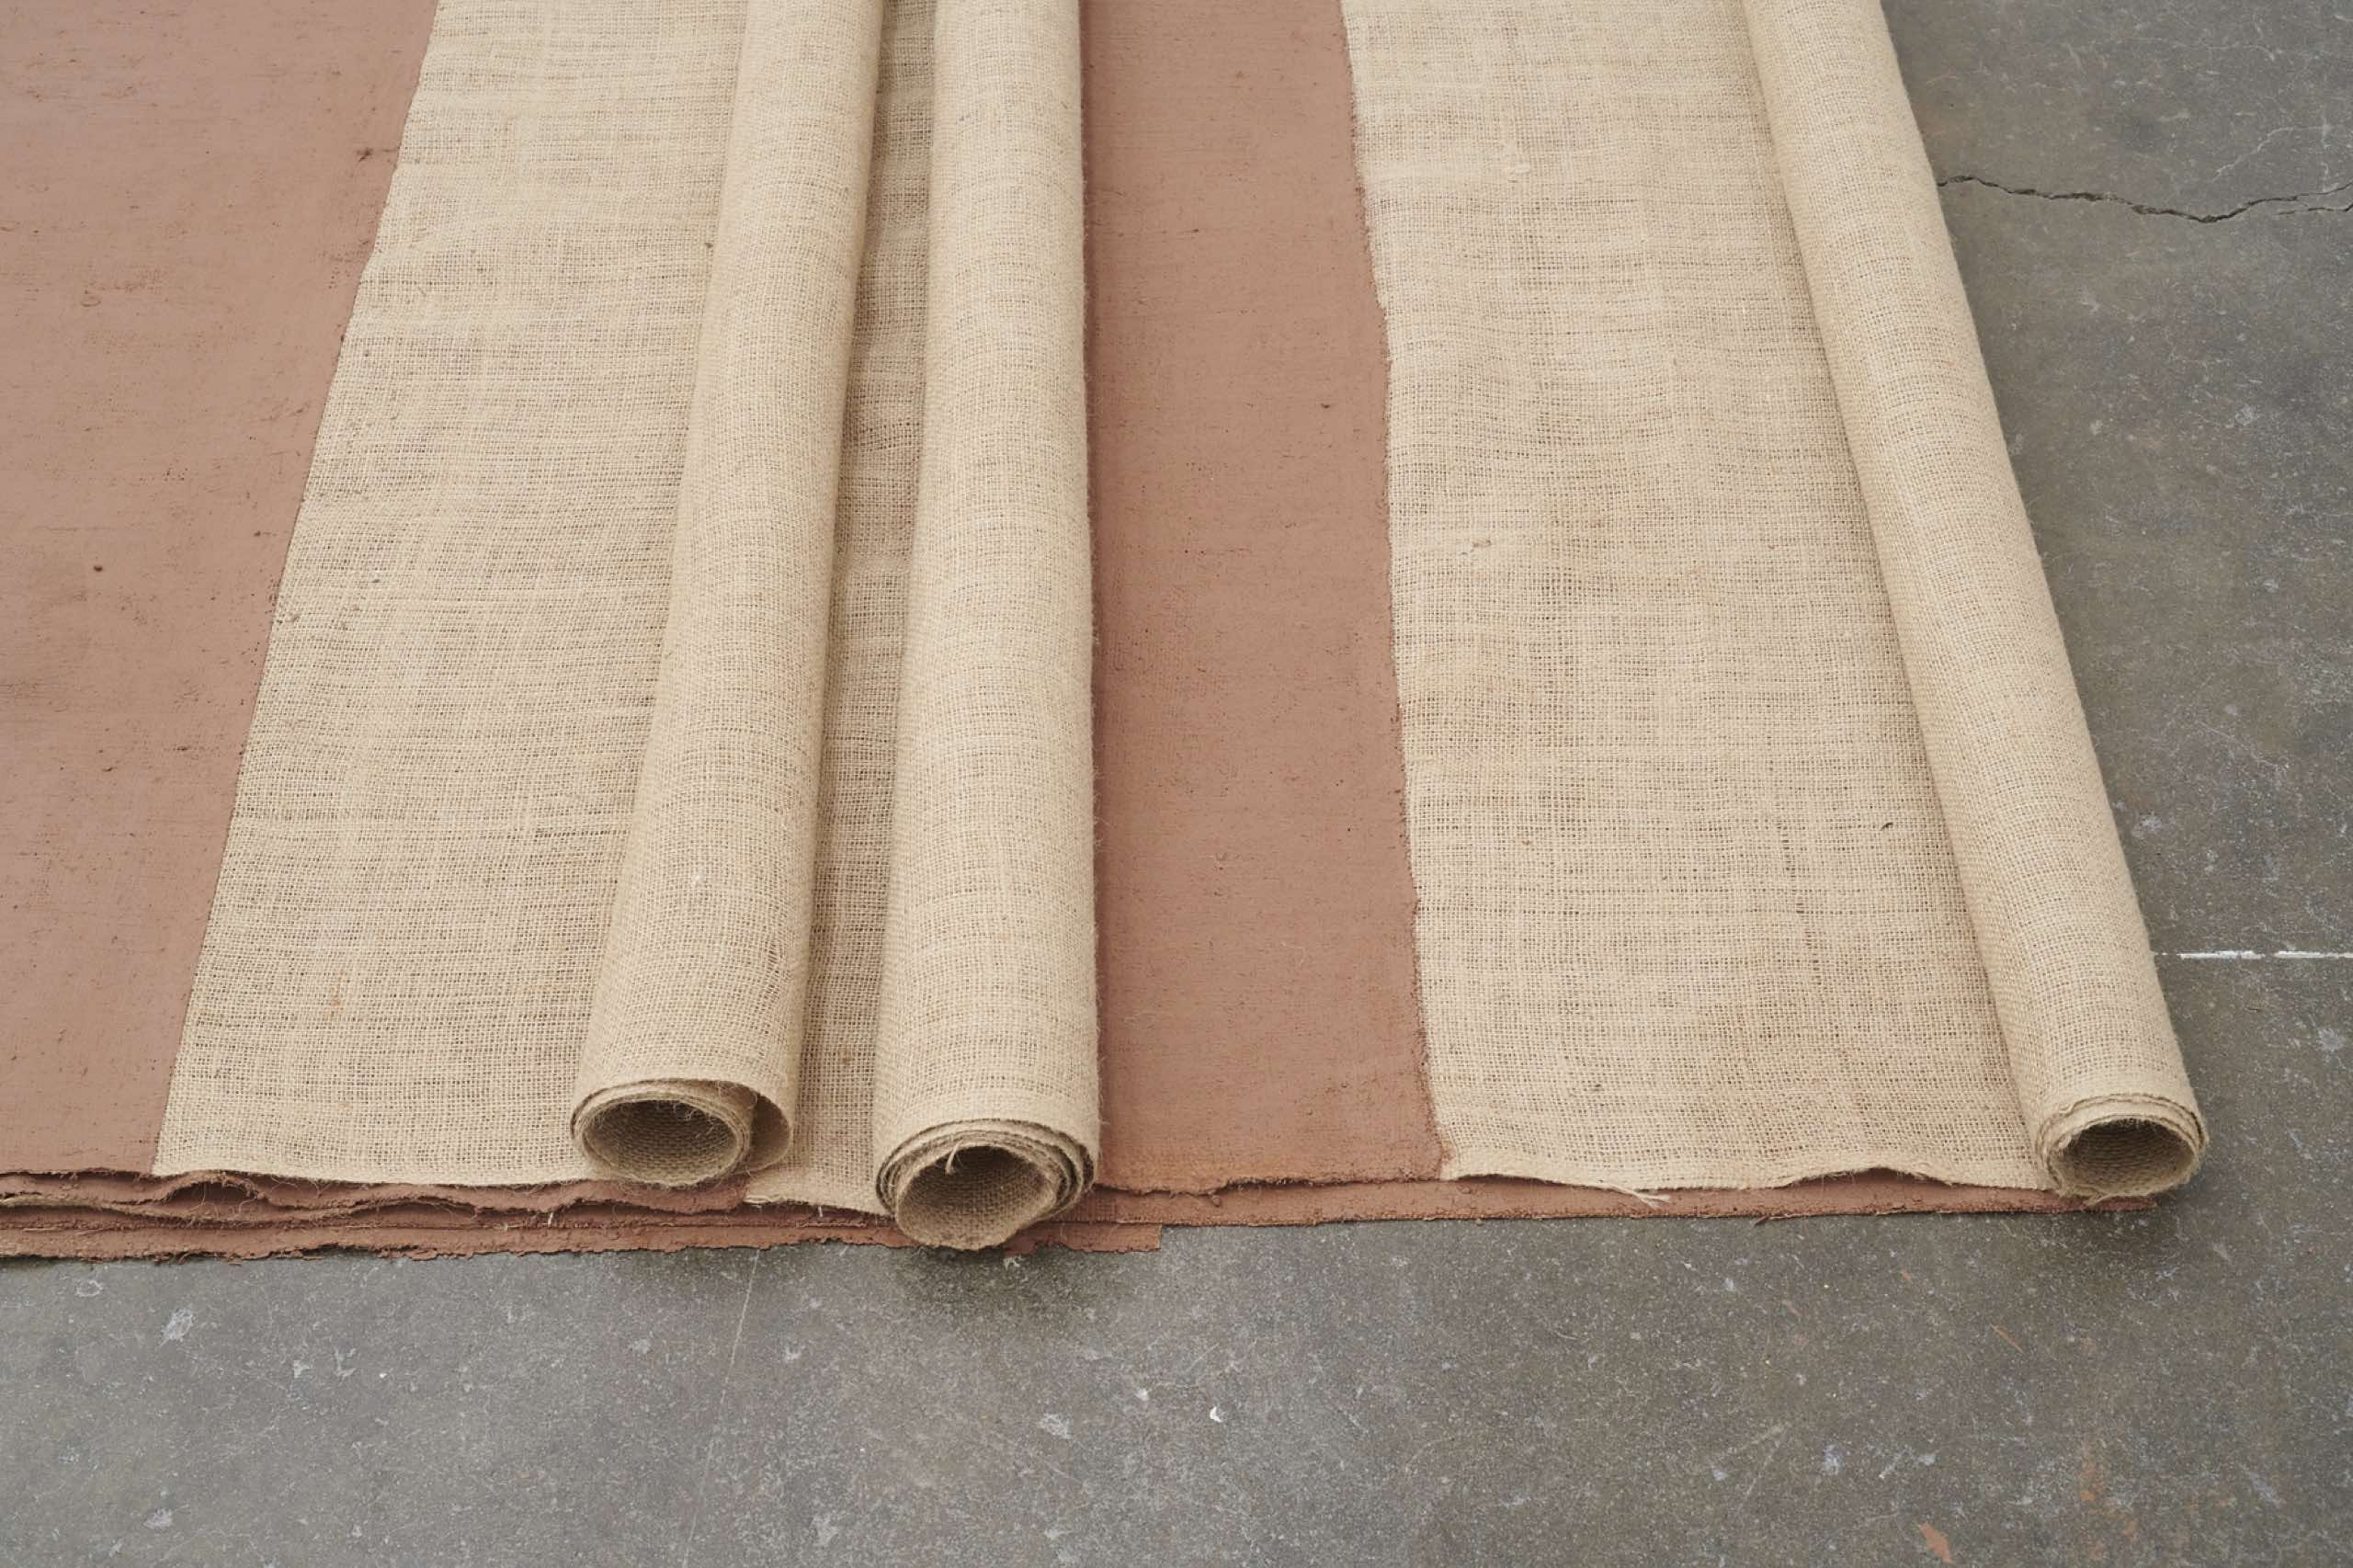 Delcy Morelos Paisaje (Landscape), 2021, Fertile soil, clay, cocoa powder, ground cloves, and water, mixed and applied onto burlap